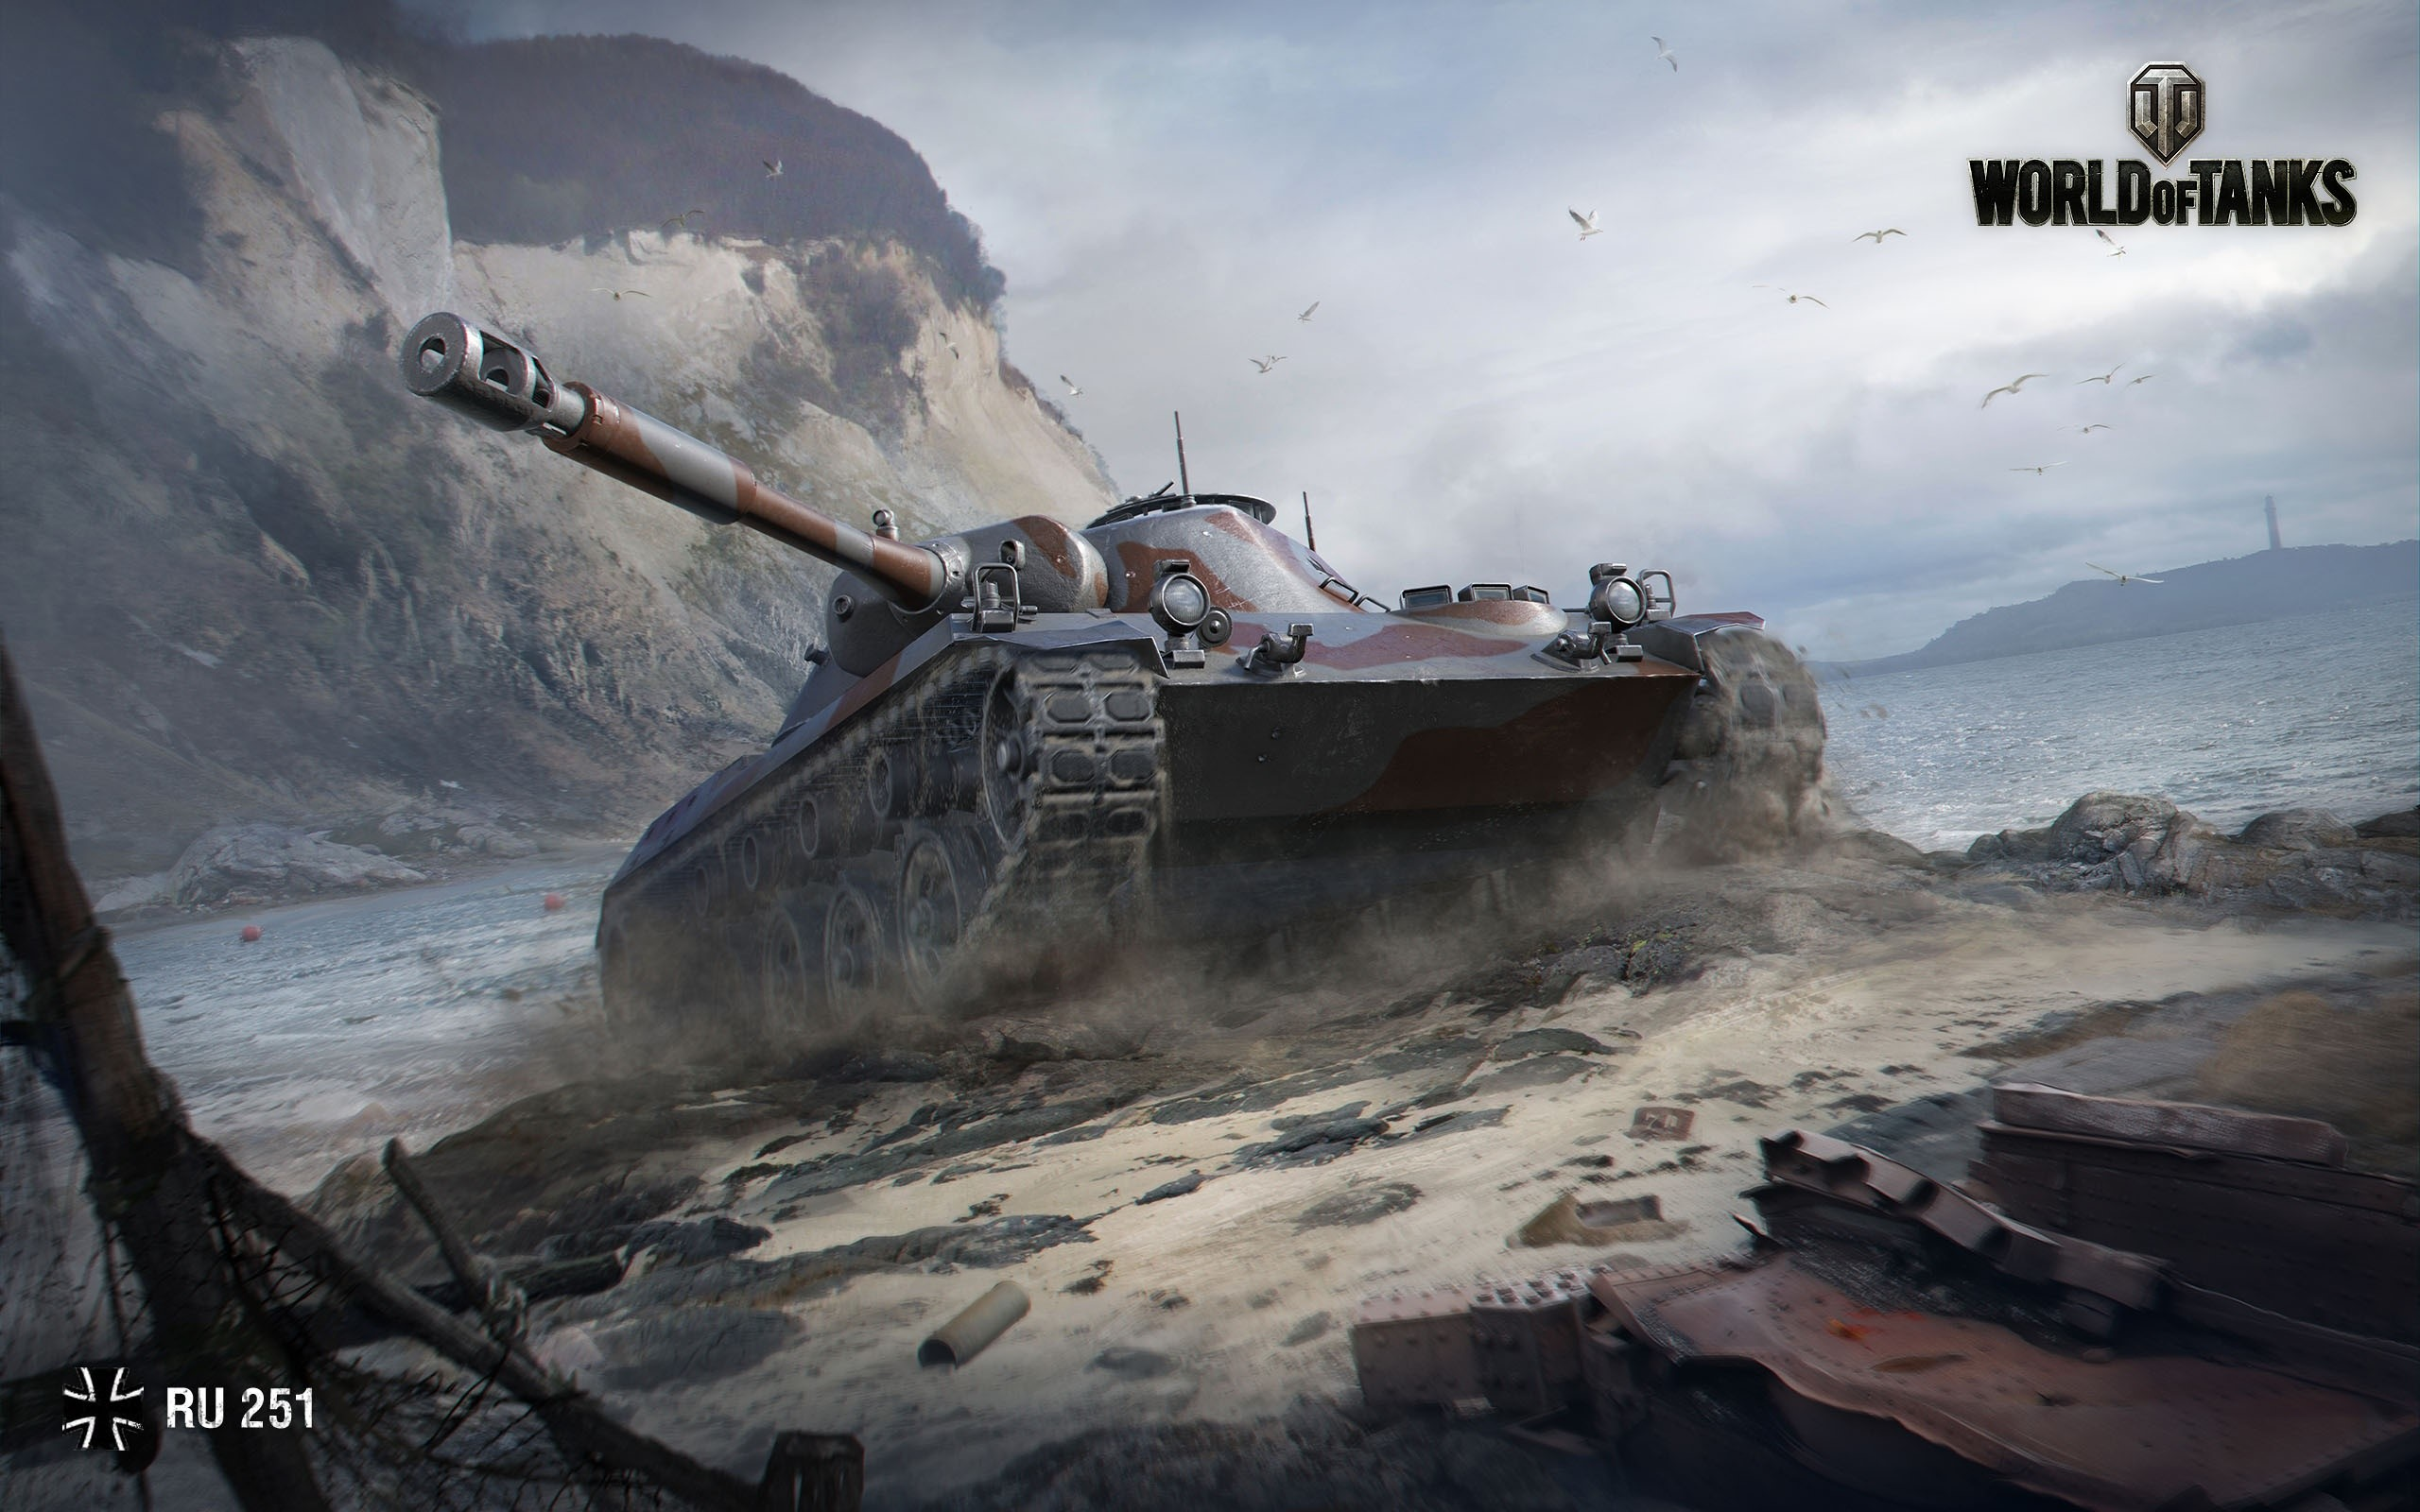 Wallpaper RU 251 from World of Tanks